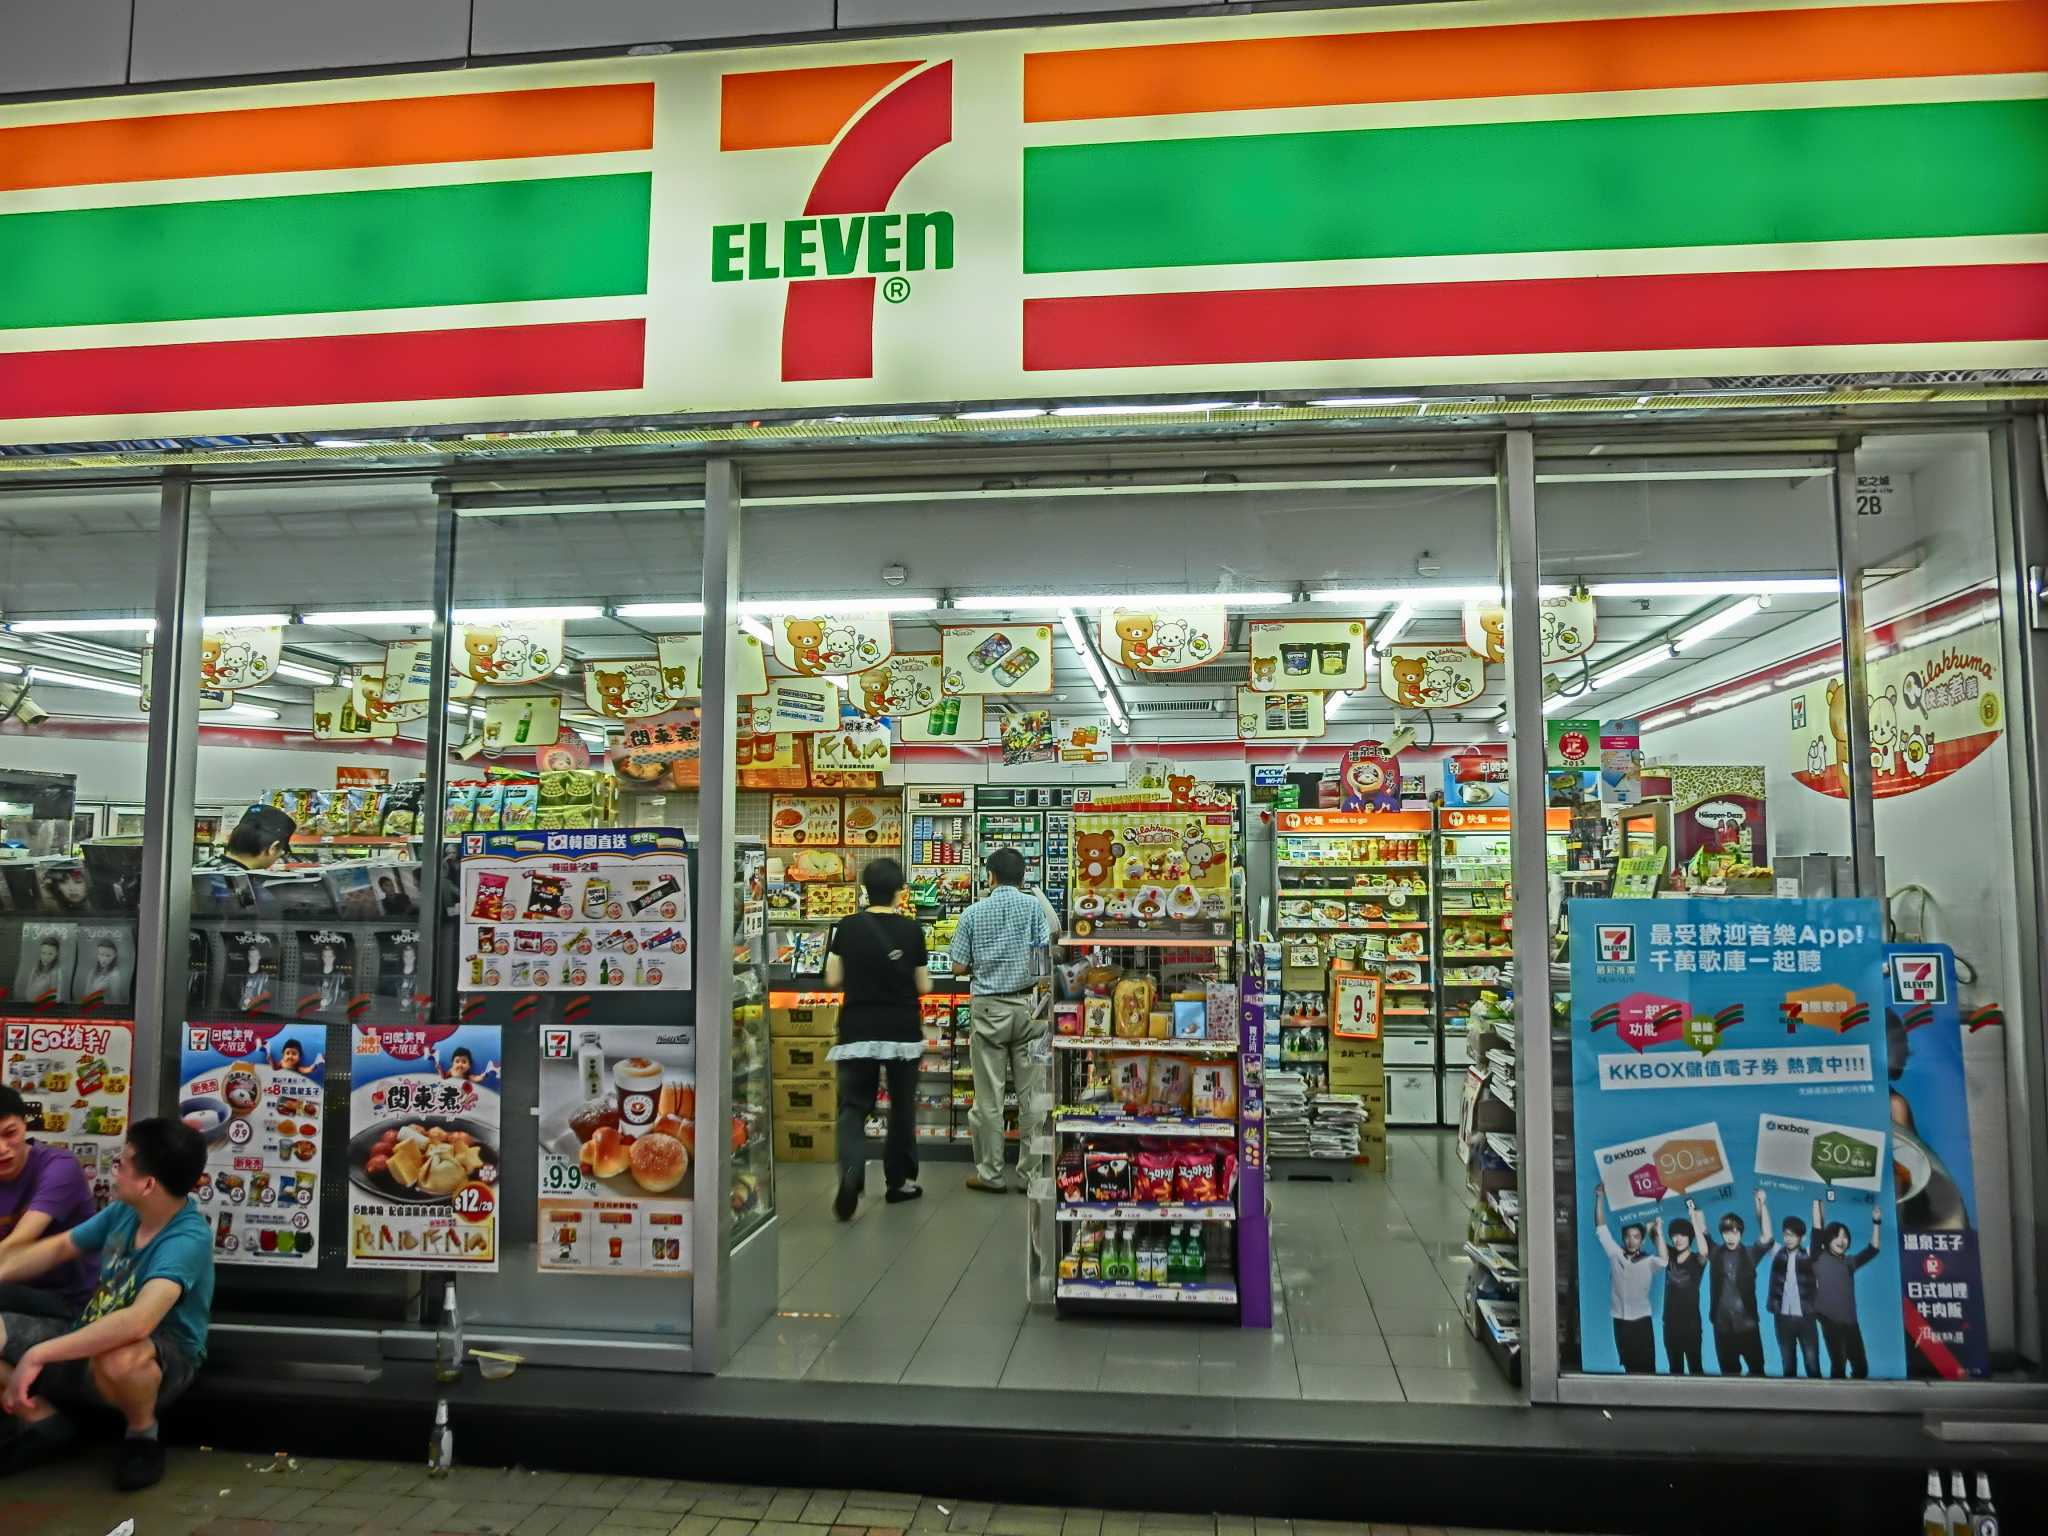 Watch video · ICE targets four stores in metro Detroit looking for undocumented immigrant workers. Looking for undocumented immigrants, ICE targets 98 7-Eleven stores in U.S., 4 of them in metro Detroit.